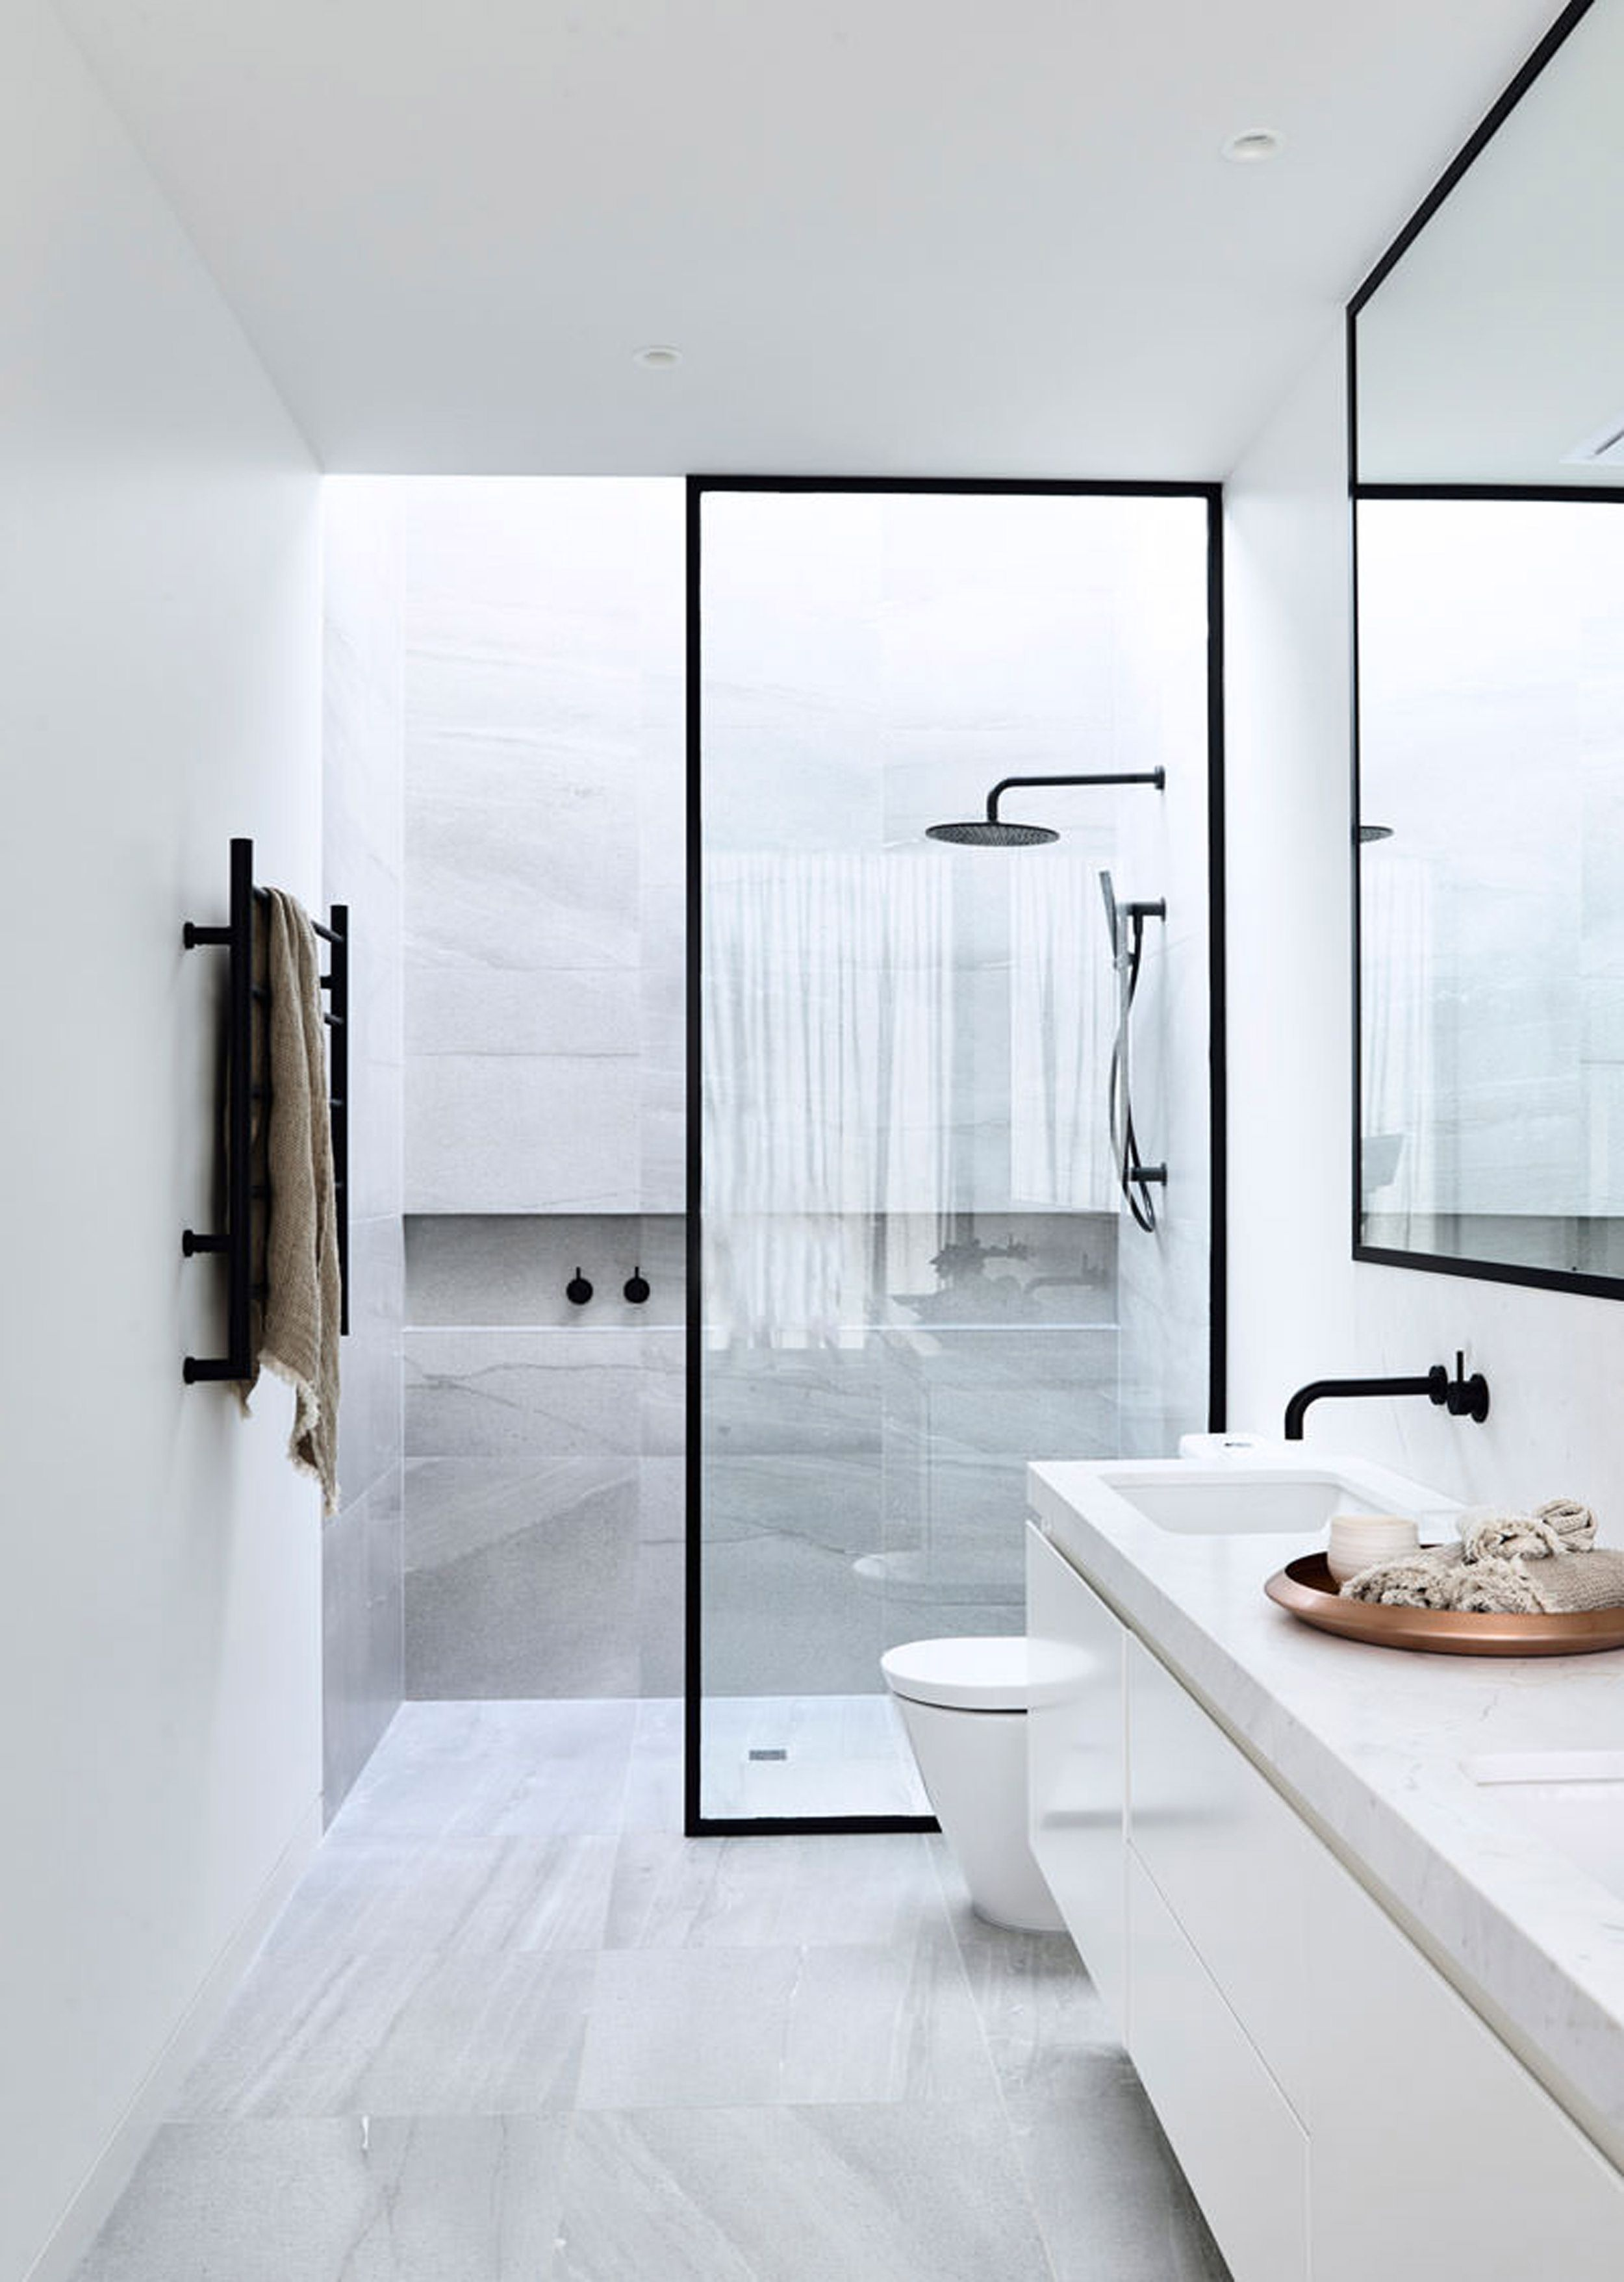 Bathroom Design Trends Emily Henderson Design Trends 2018 Bathroom Integrated Shower 011